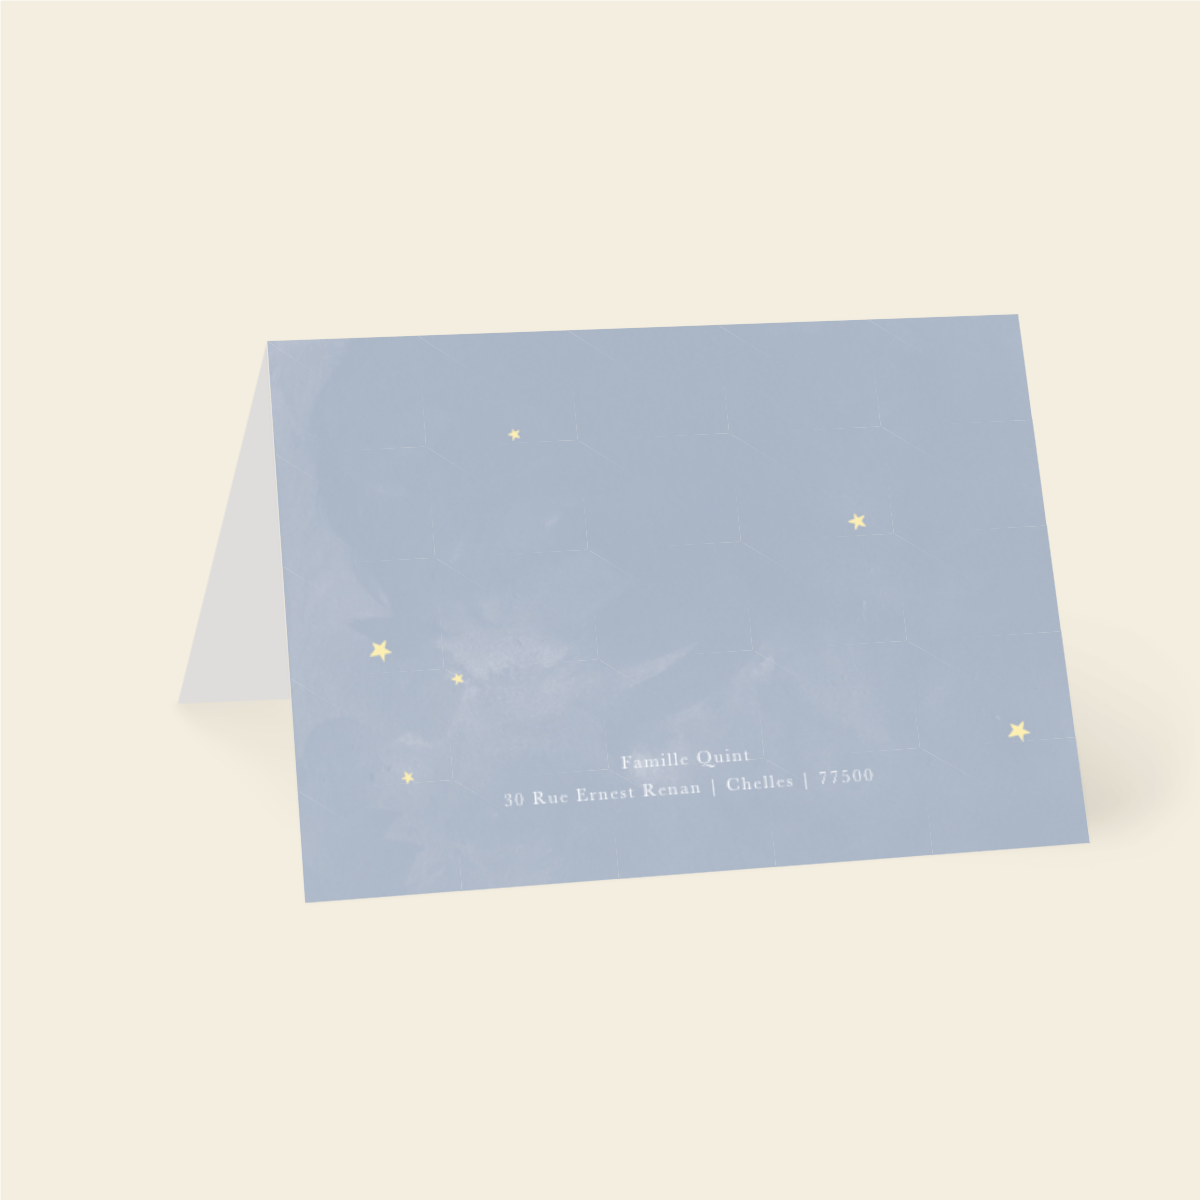 Https%3a%2f%2fwww.papier.com%2fproduct image%2f74680%2f48%2fsleeping moon 17512 arriere 1560197305.png?ixlib=rb 1.1